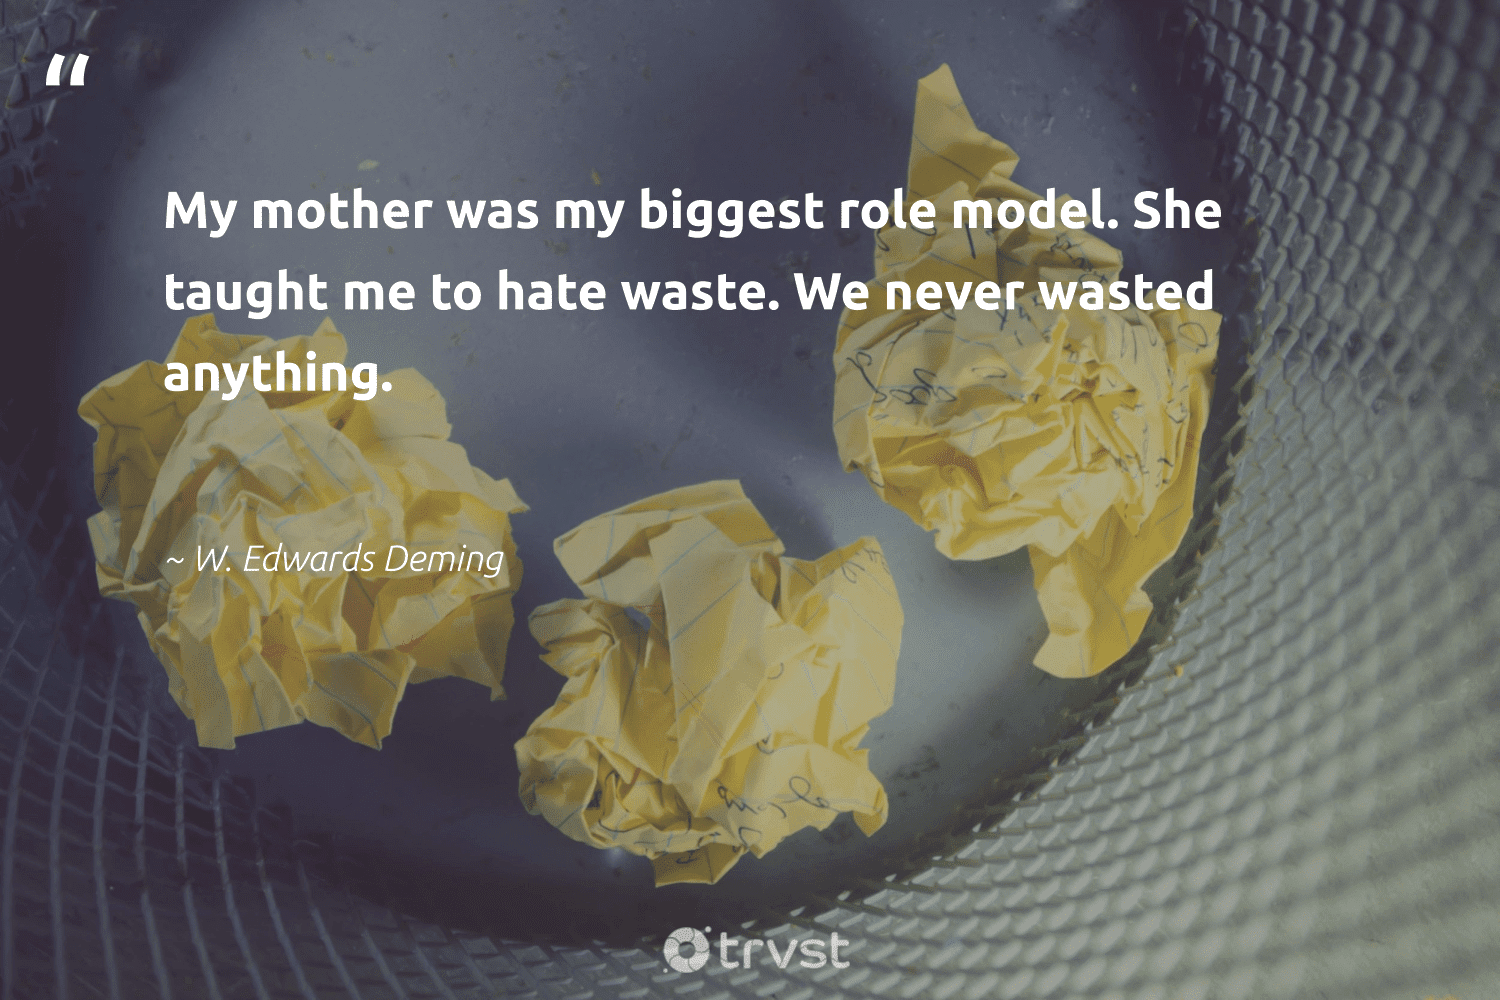 """""""My mother was my biggest role model. She taught me to hate waste. We never wasted anything.""""  - W. Edwards Deming #trvst #quotes #waste #wecandobetter #bethechange #sustainability #socialimpact #wasteless #takeaction #thinkgreen #collectiveaction #environment"""